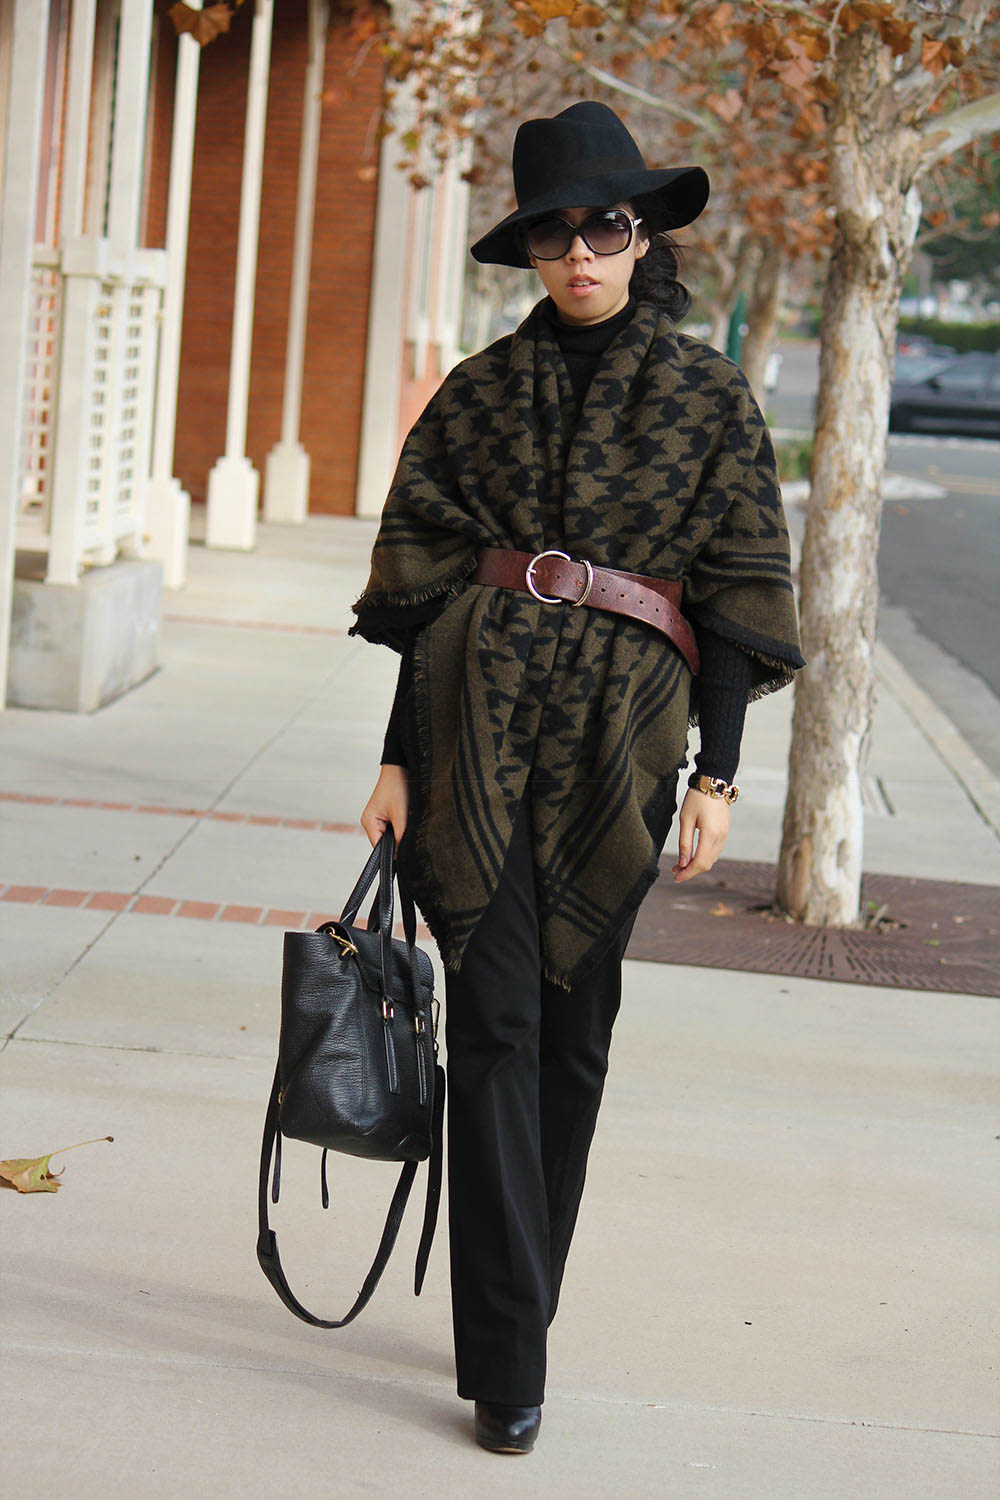 Adrienne Nguyen_Invictus_Fall Fashion_How to Wear a Fedora with a scarf